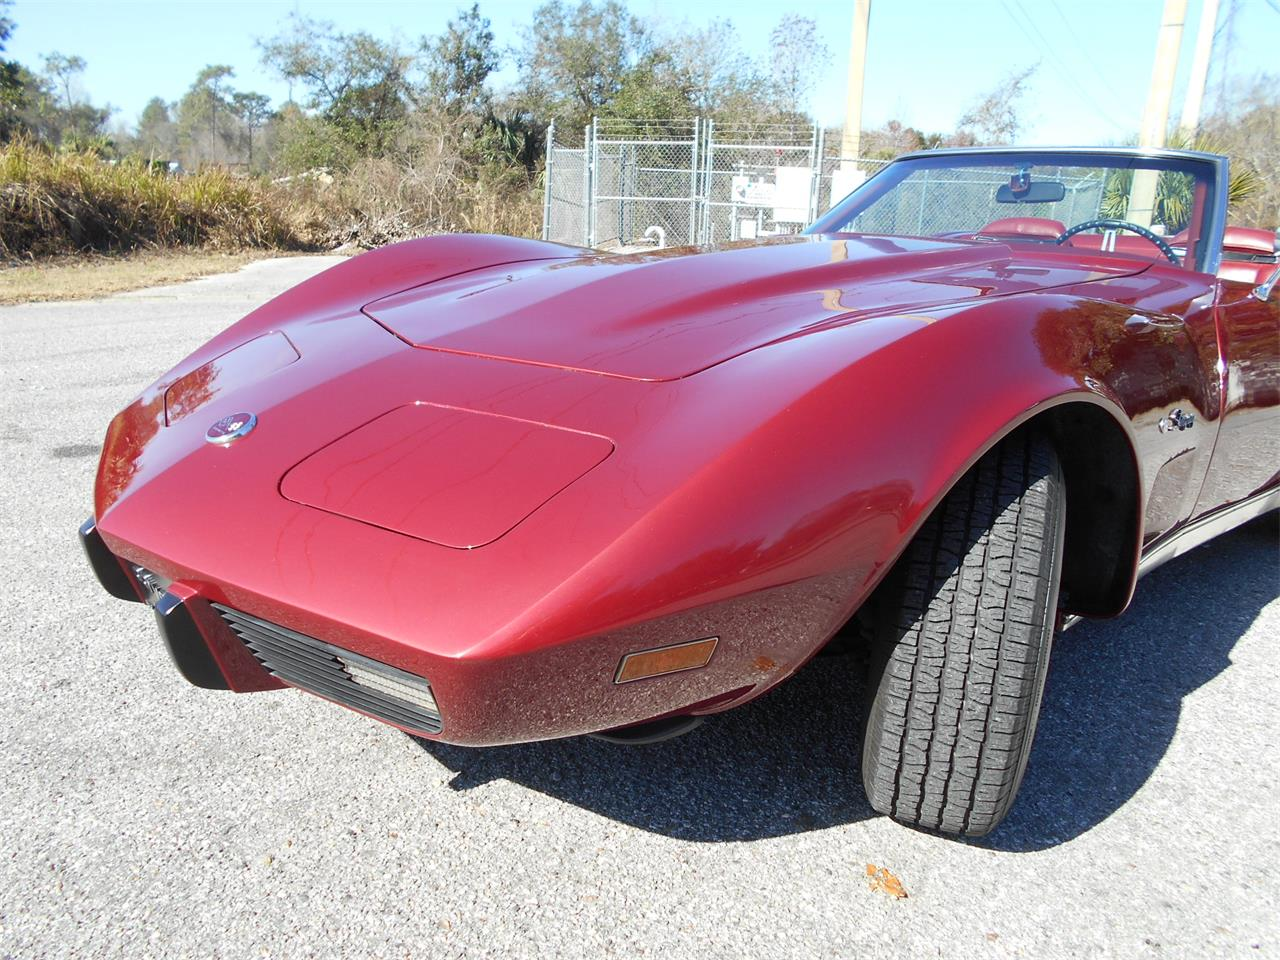 Large Picture of '75 Chevrolet Corvette located in Apopka Florida - $21,900.00 - MUDY